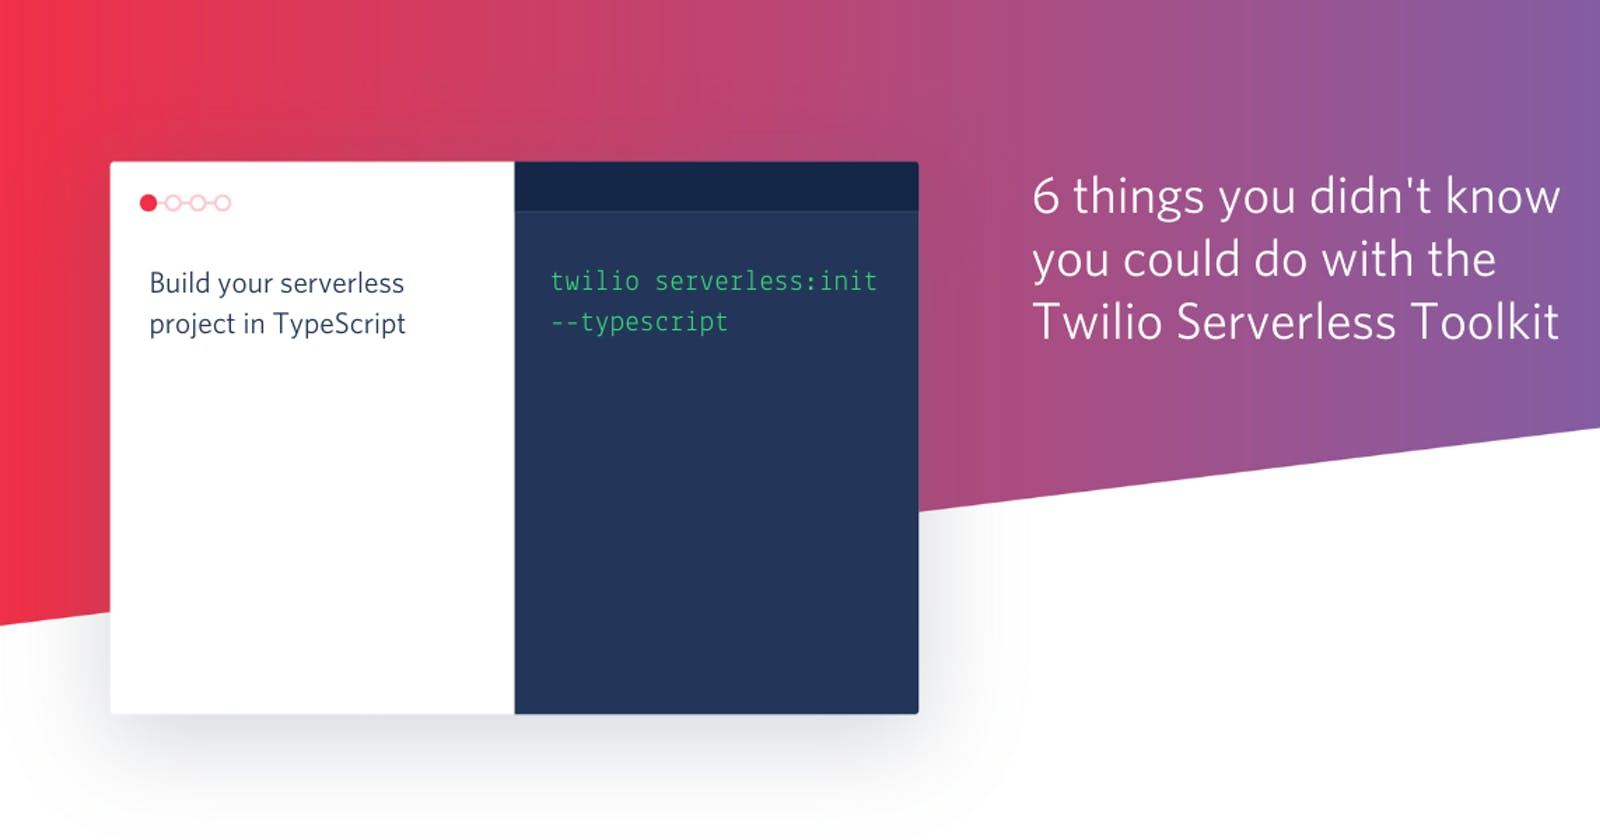 6 things you didn't know you could do with the Twilio Serverless Toolkit